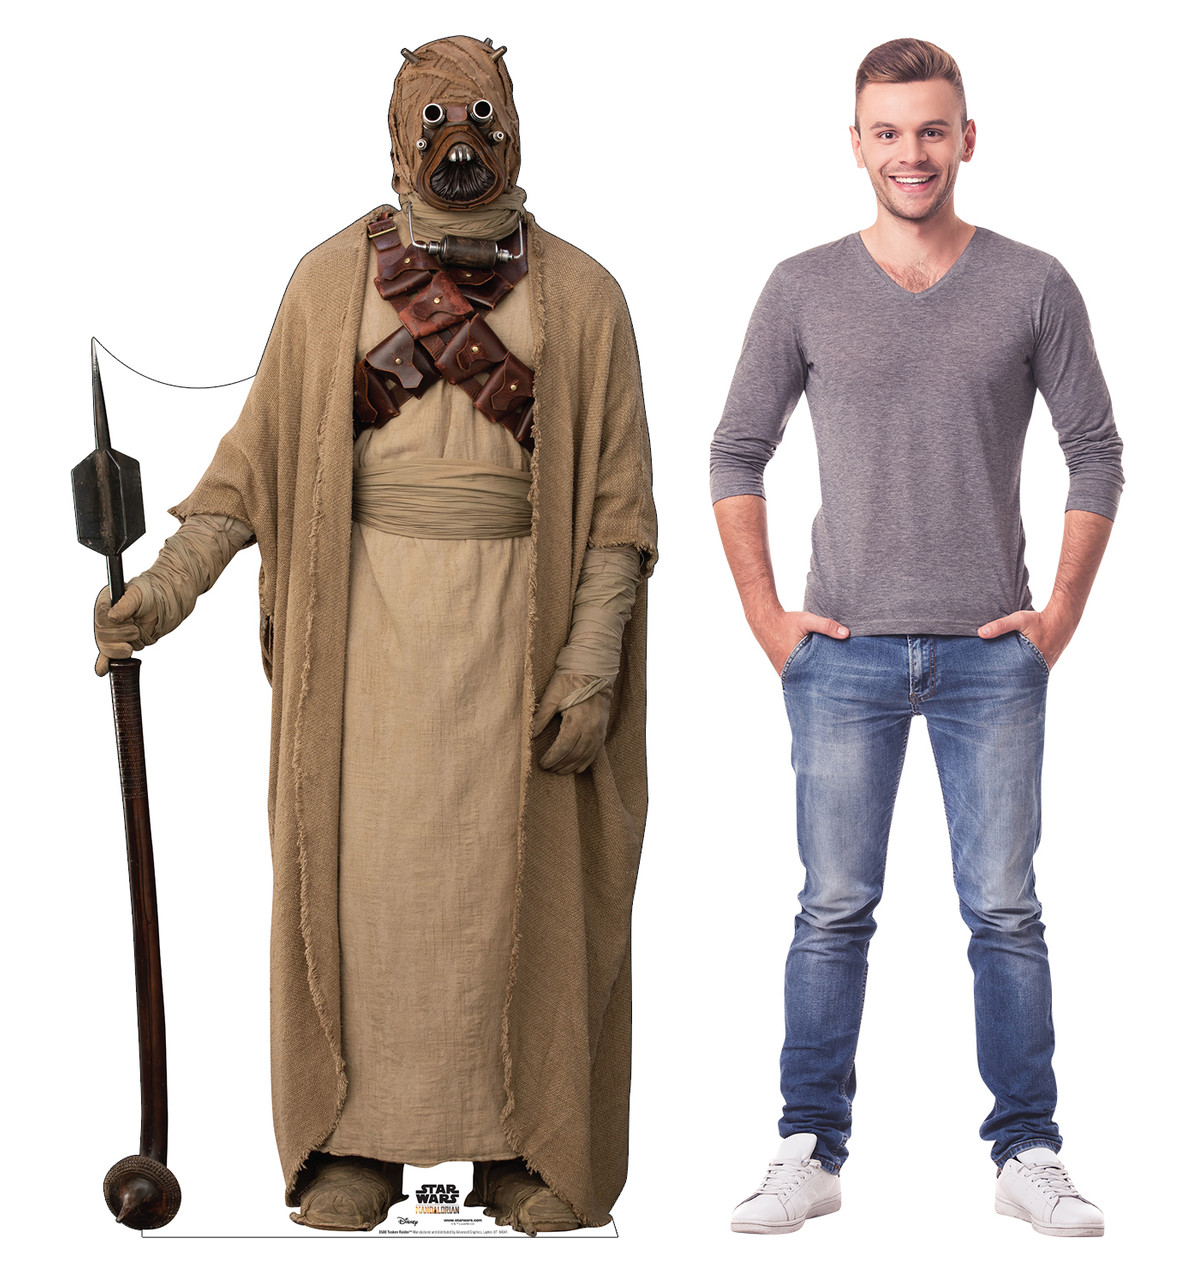 Life-size cardboard standee of a Tusken Raider from the Mandalorian season 2 with model.